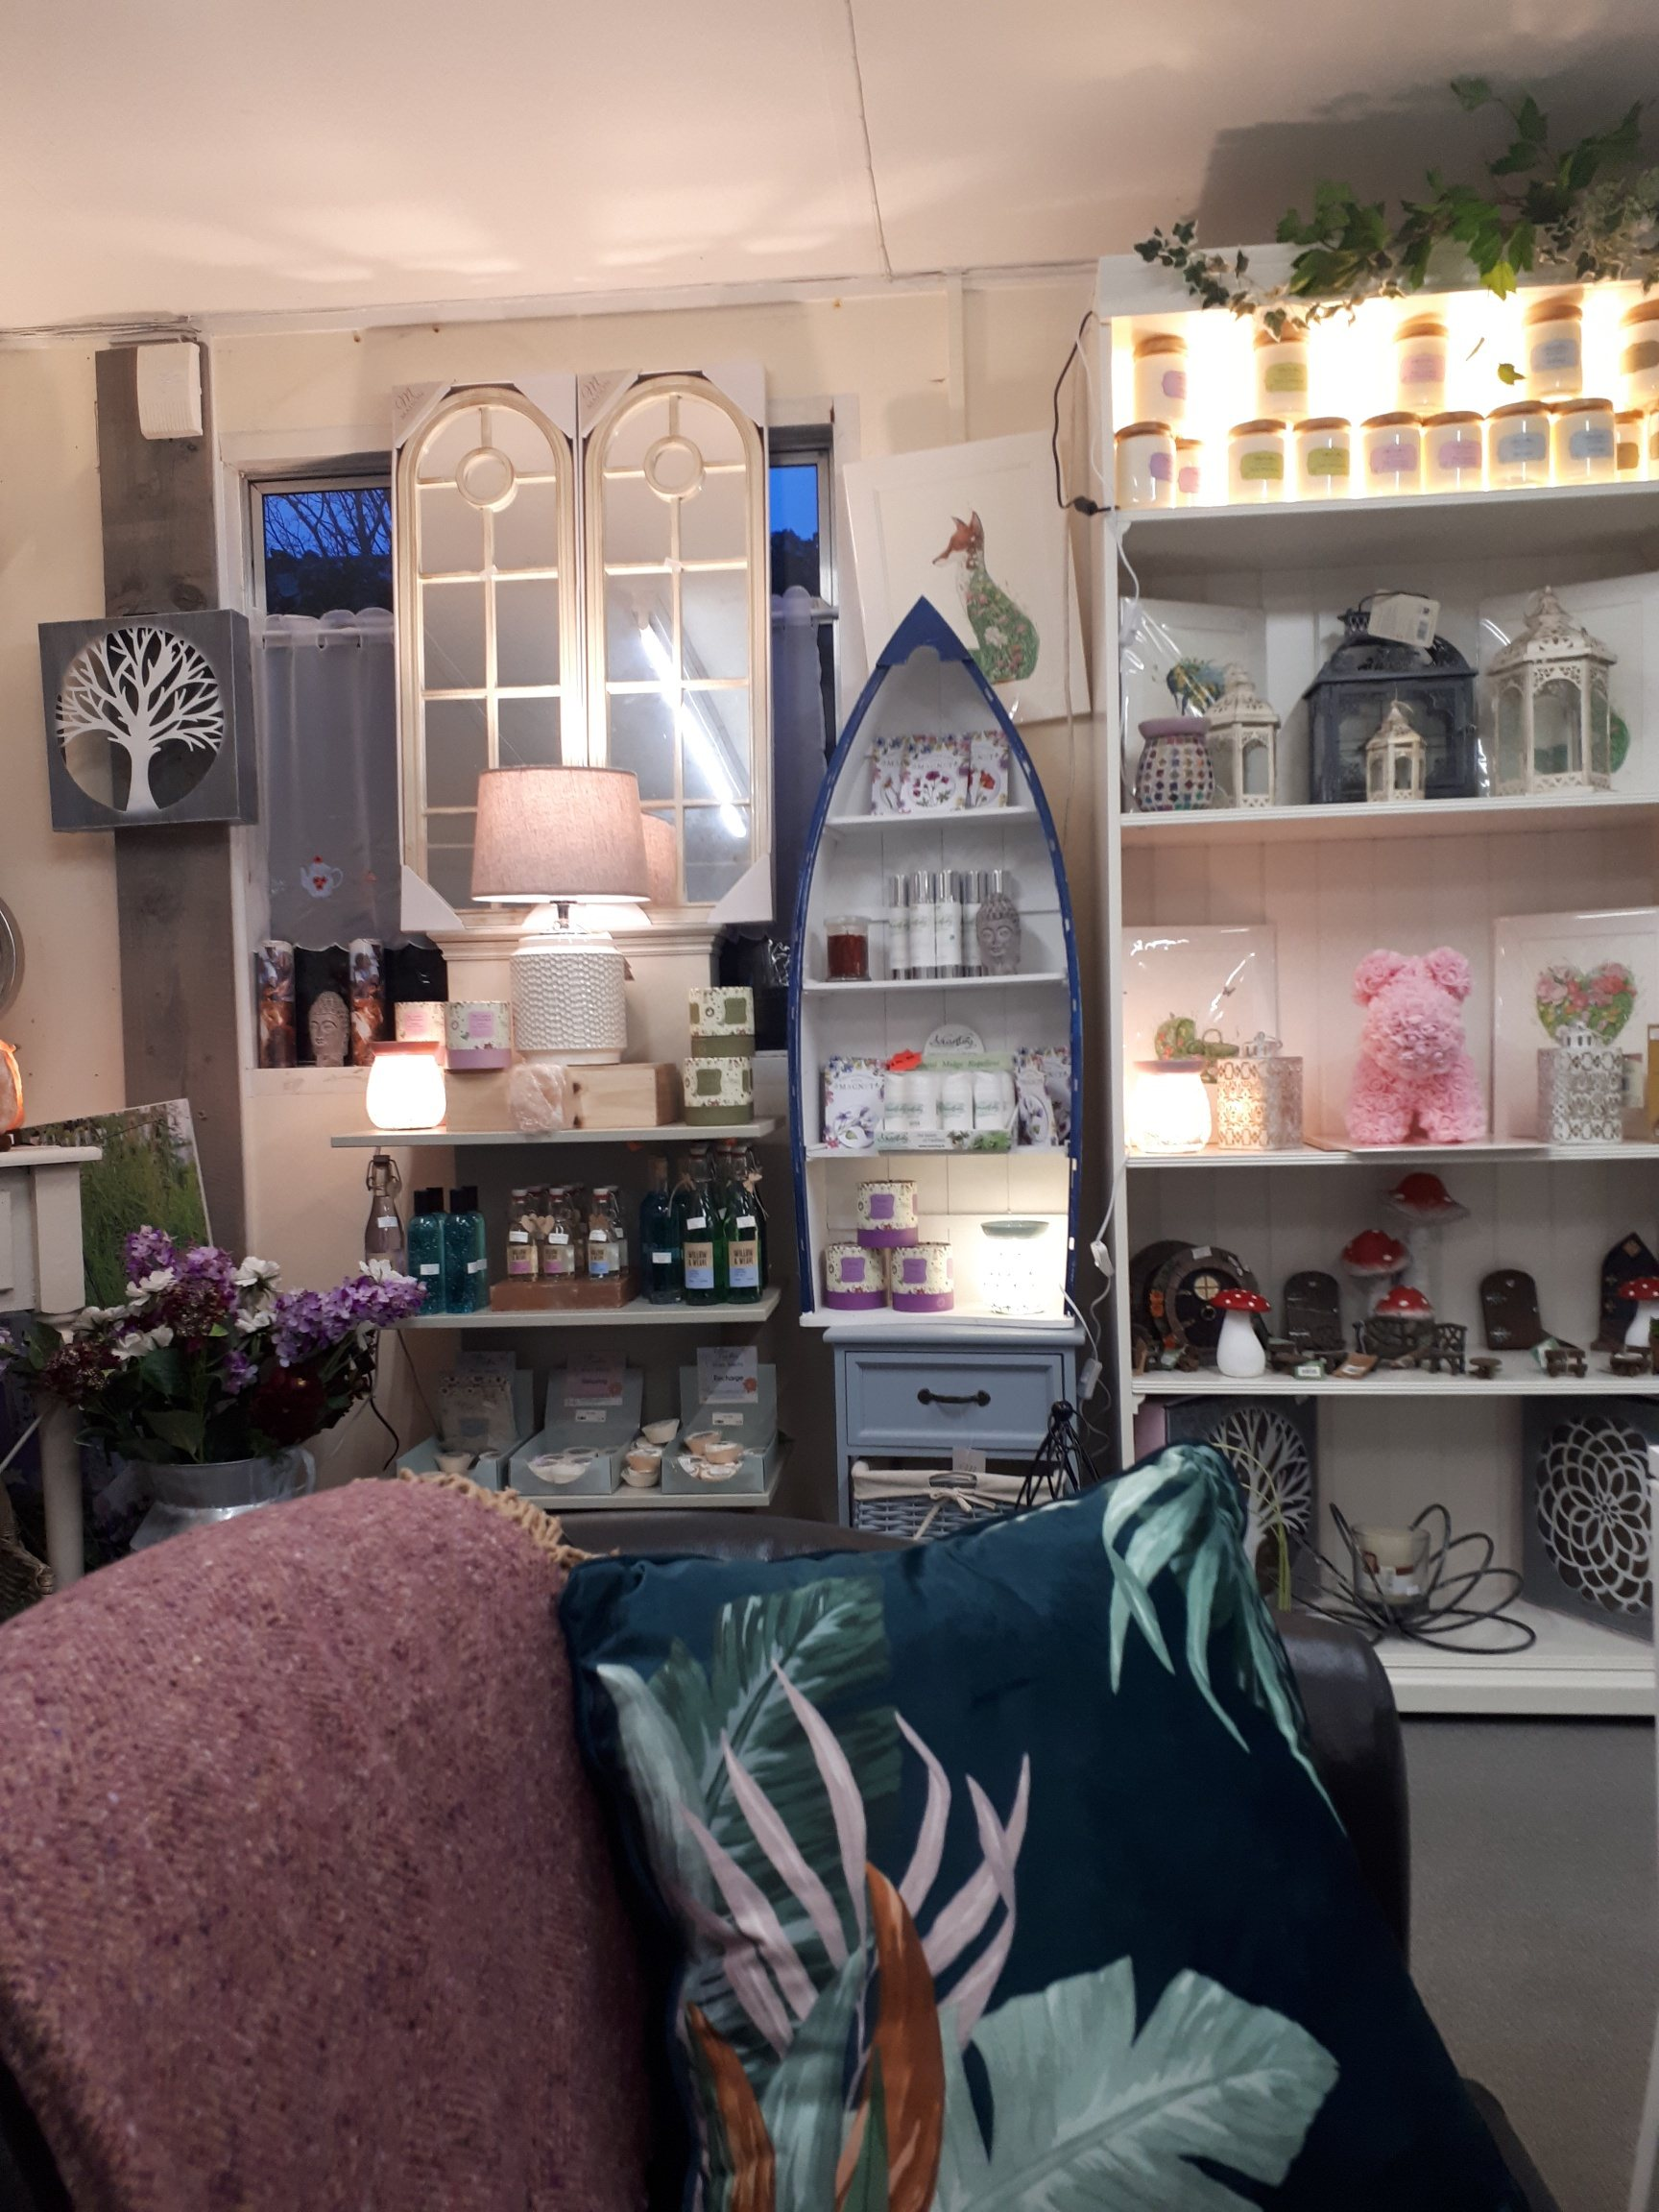 Internal view of the garden centre shop